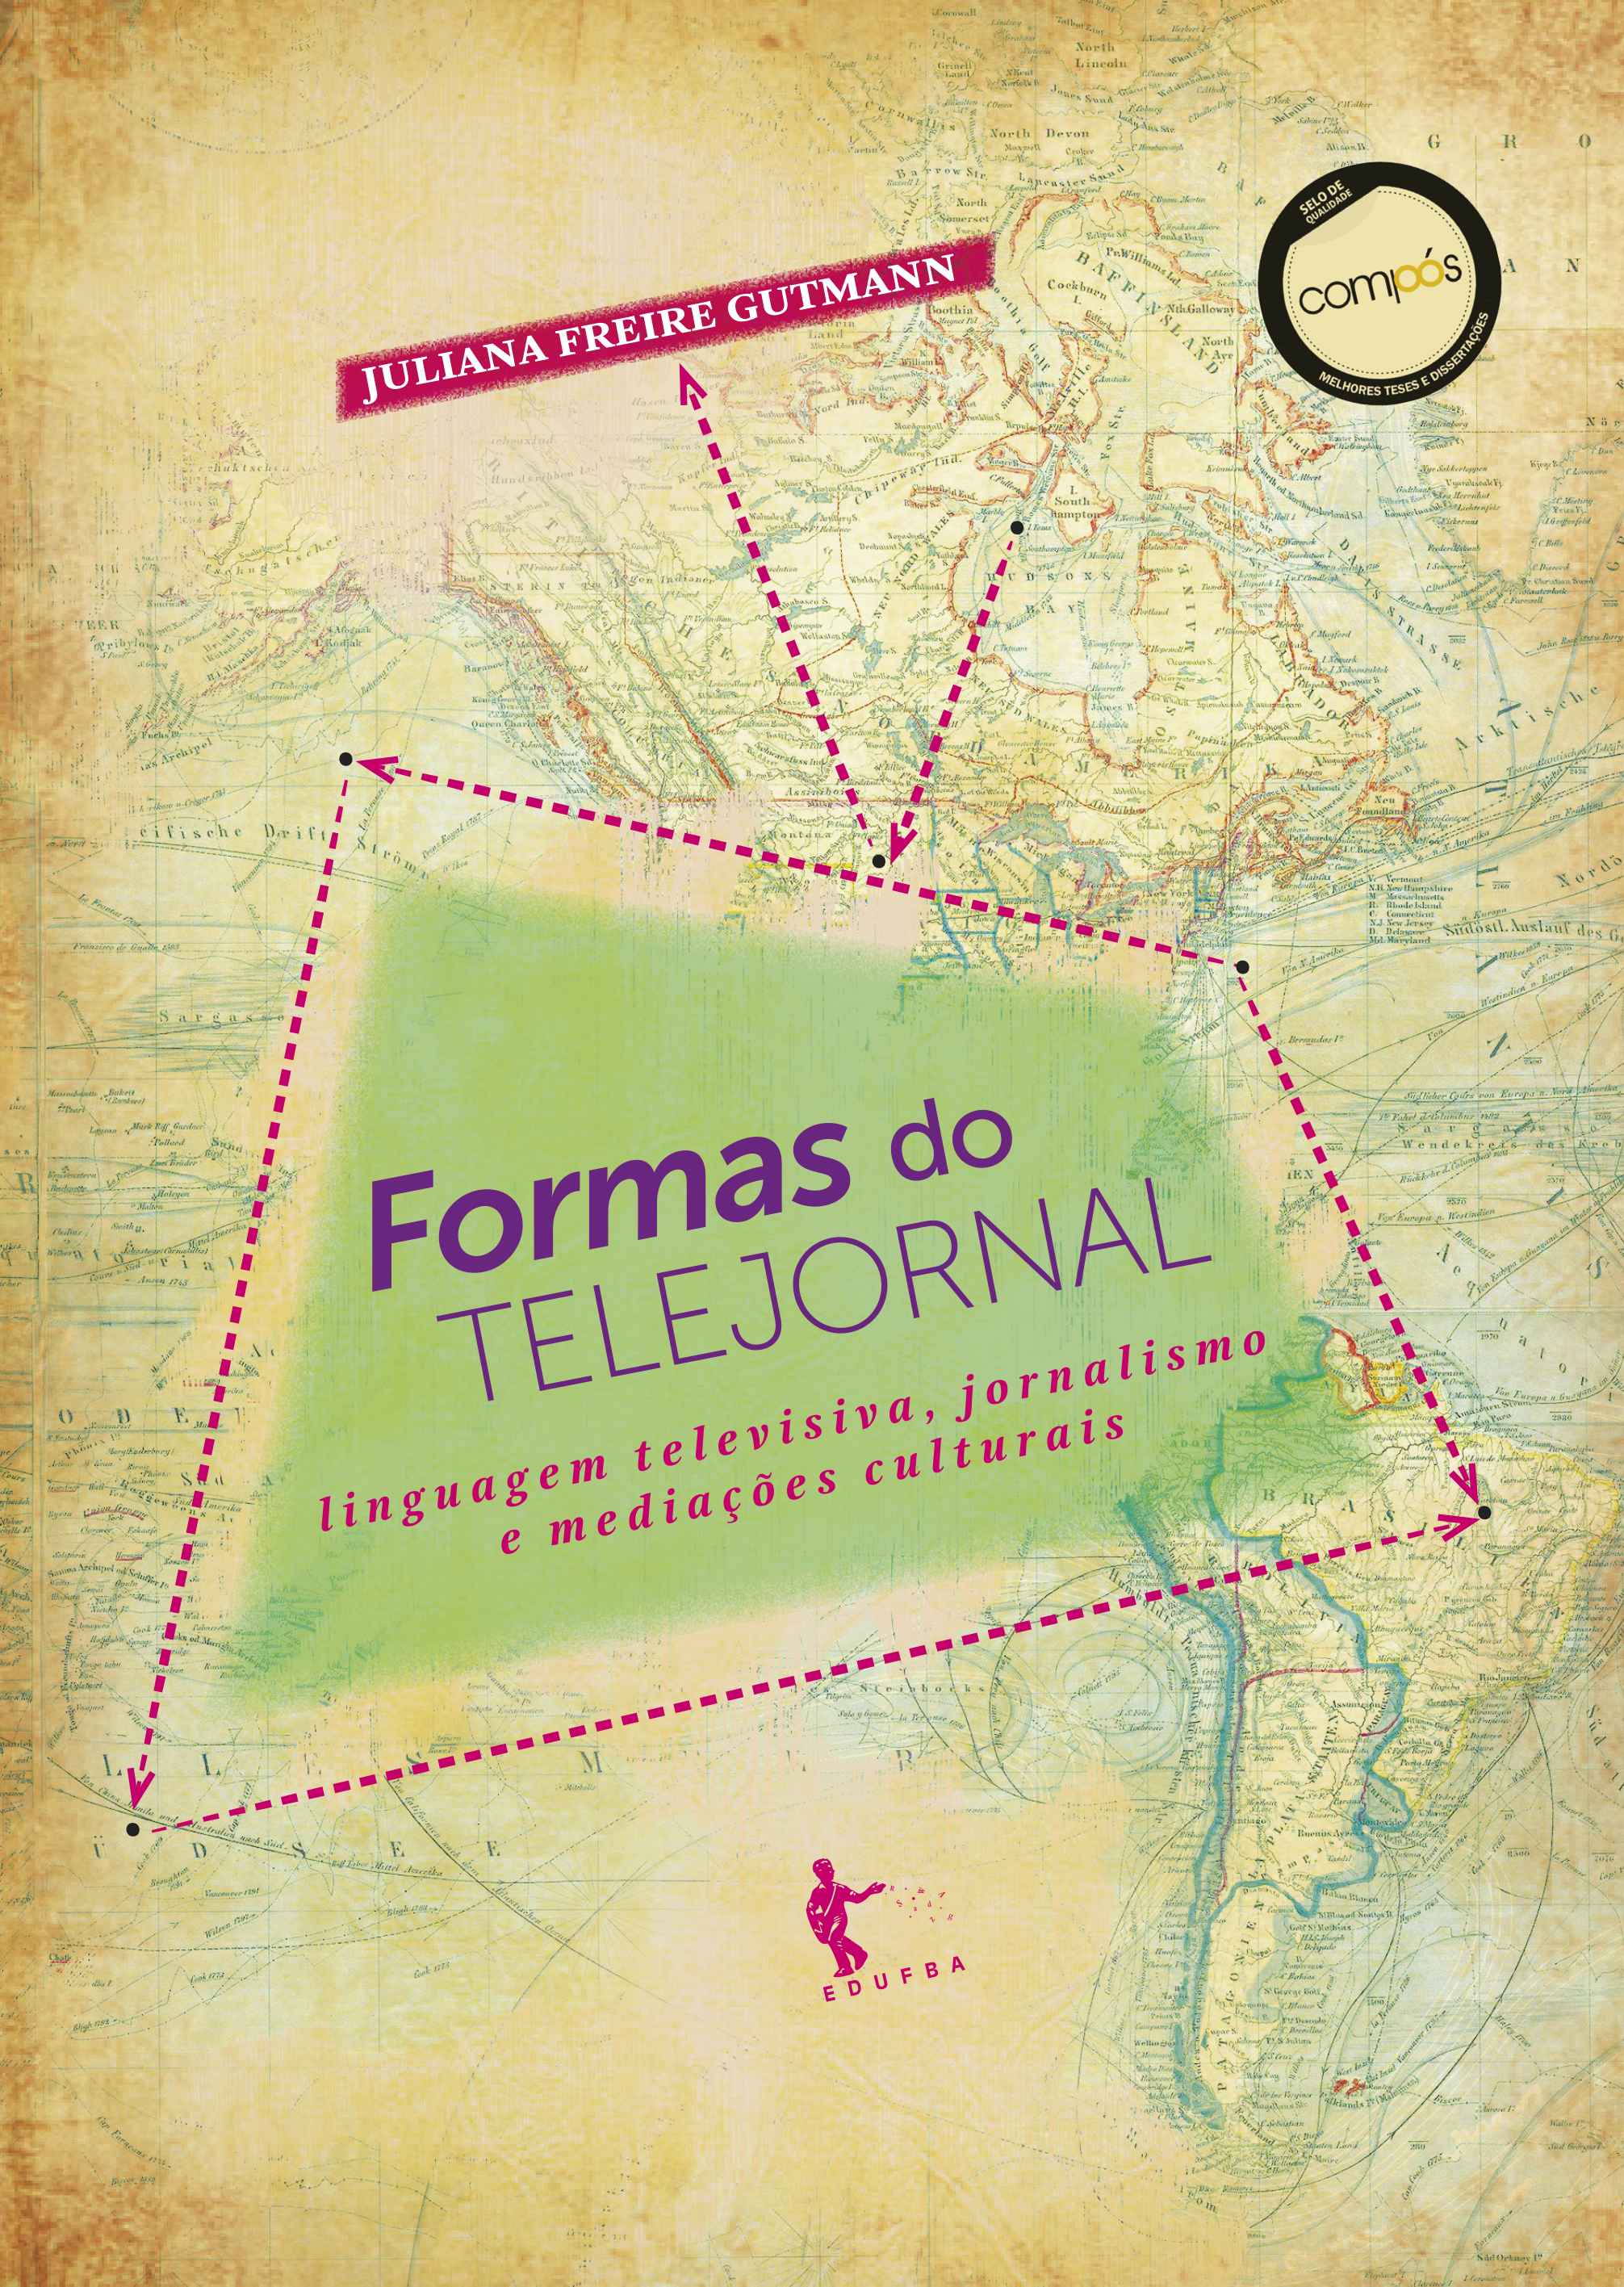 Formas do telejornal, livro de Juliana Freire Gutmann